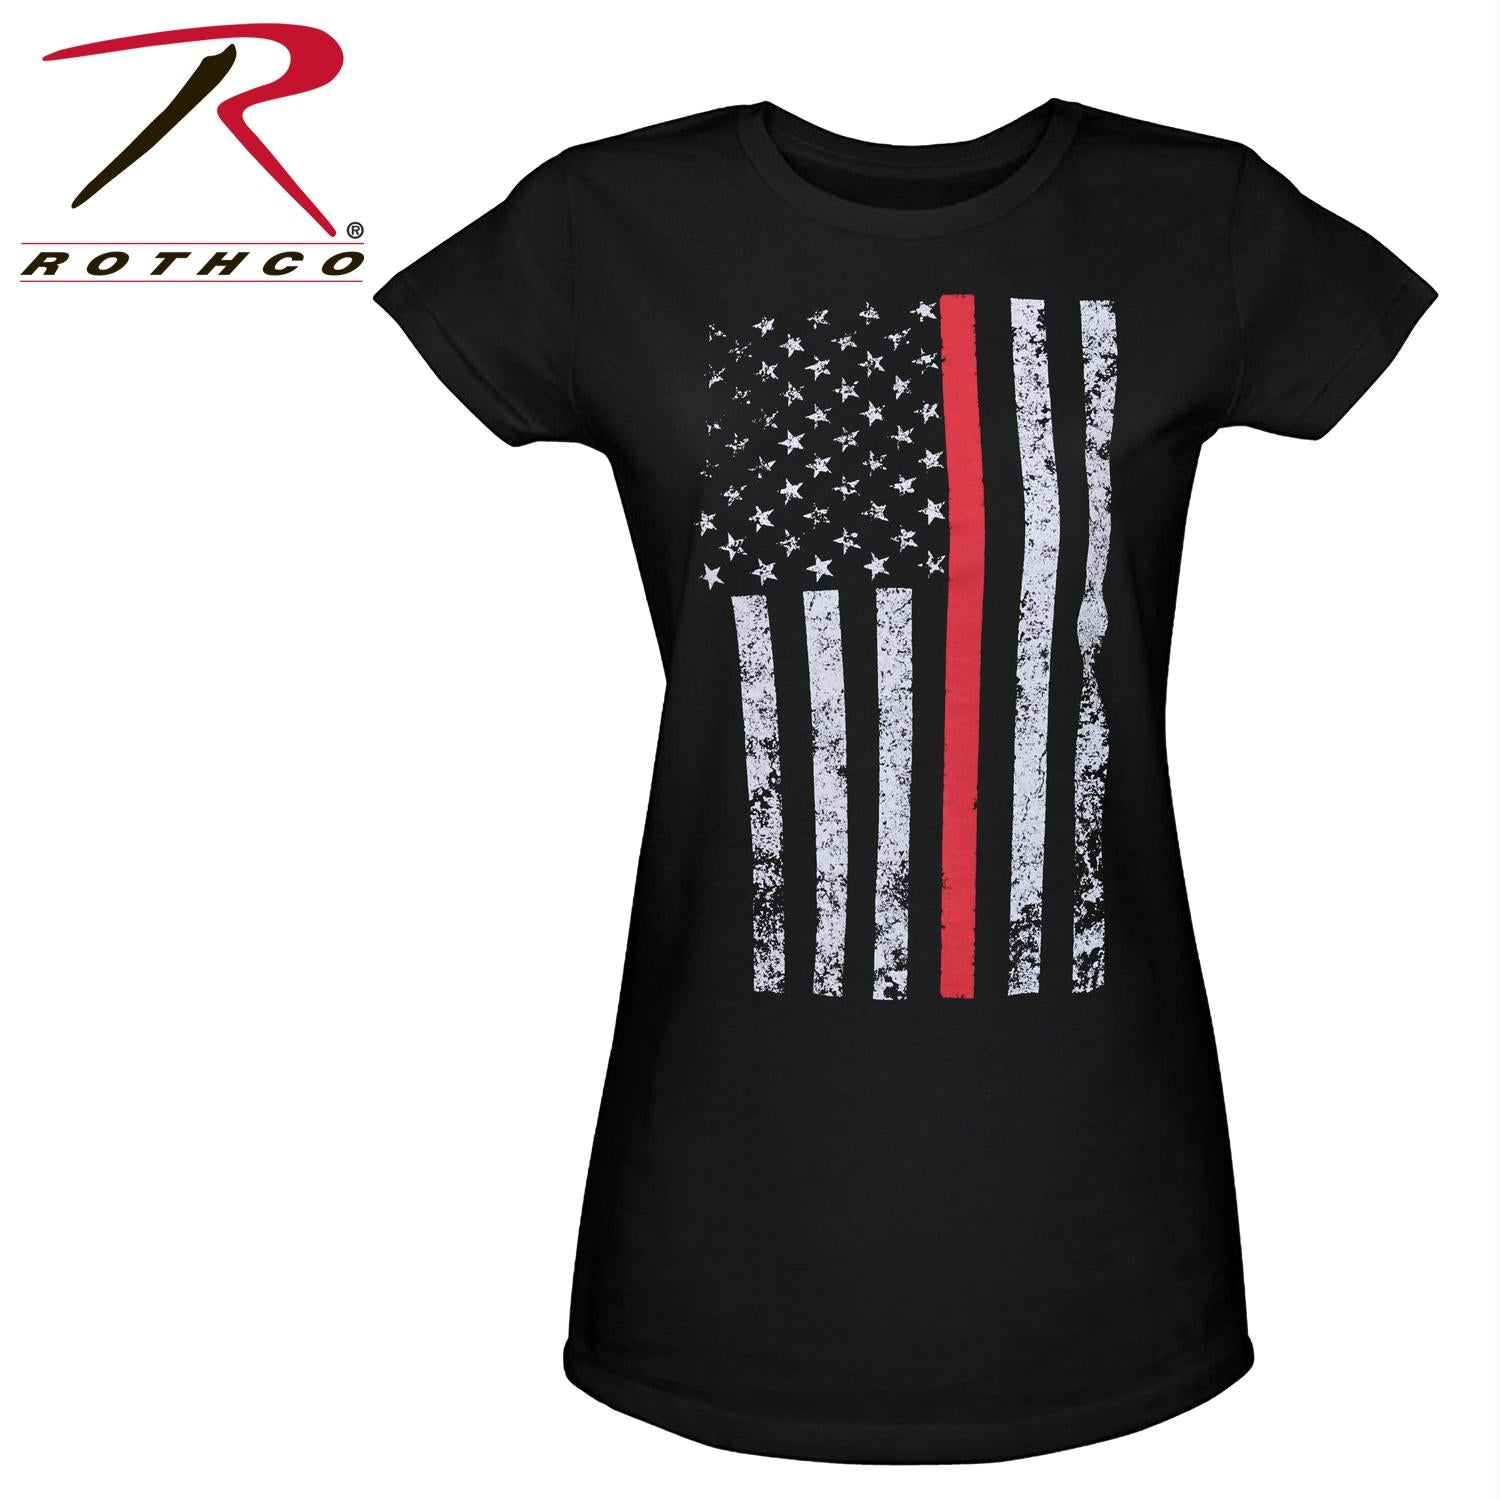 Rothco Womens Thin Red Line Longer T-Shirt - Black / XS